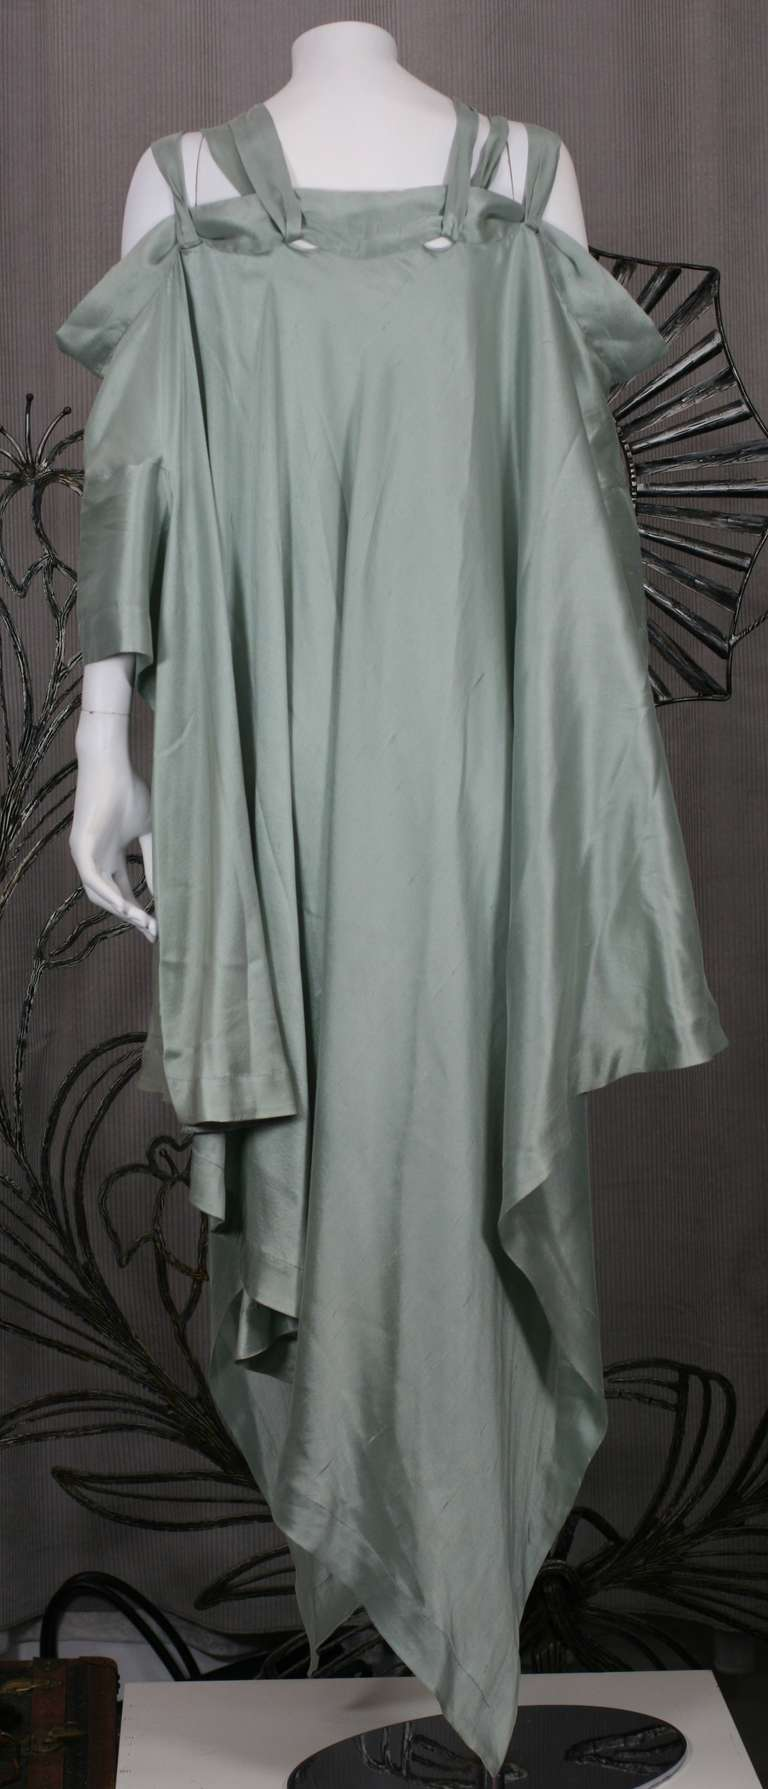 Romeo Gigli Celadon Silk Scarf Dress In Good Condition For Sale In Riverdale, NY